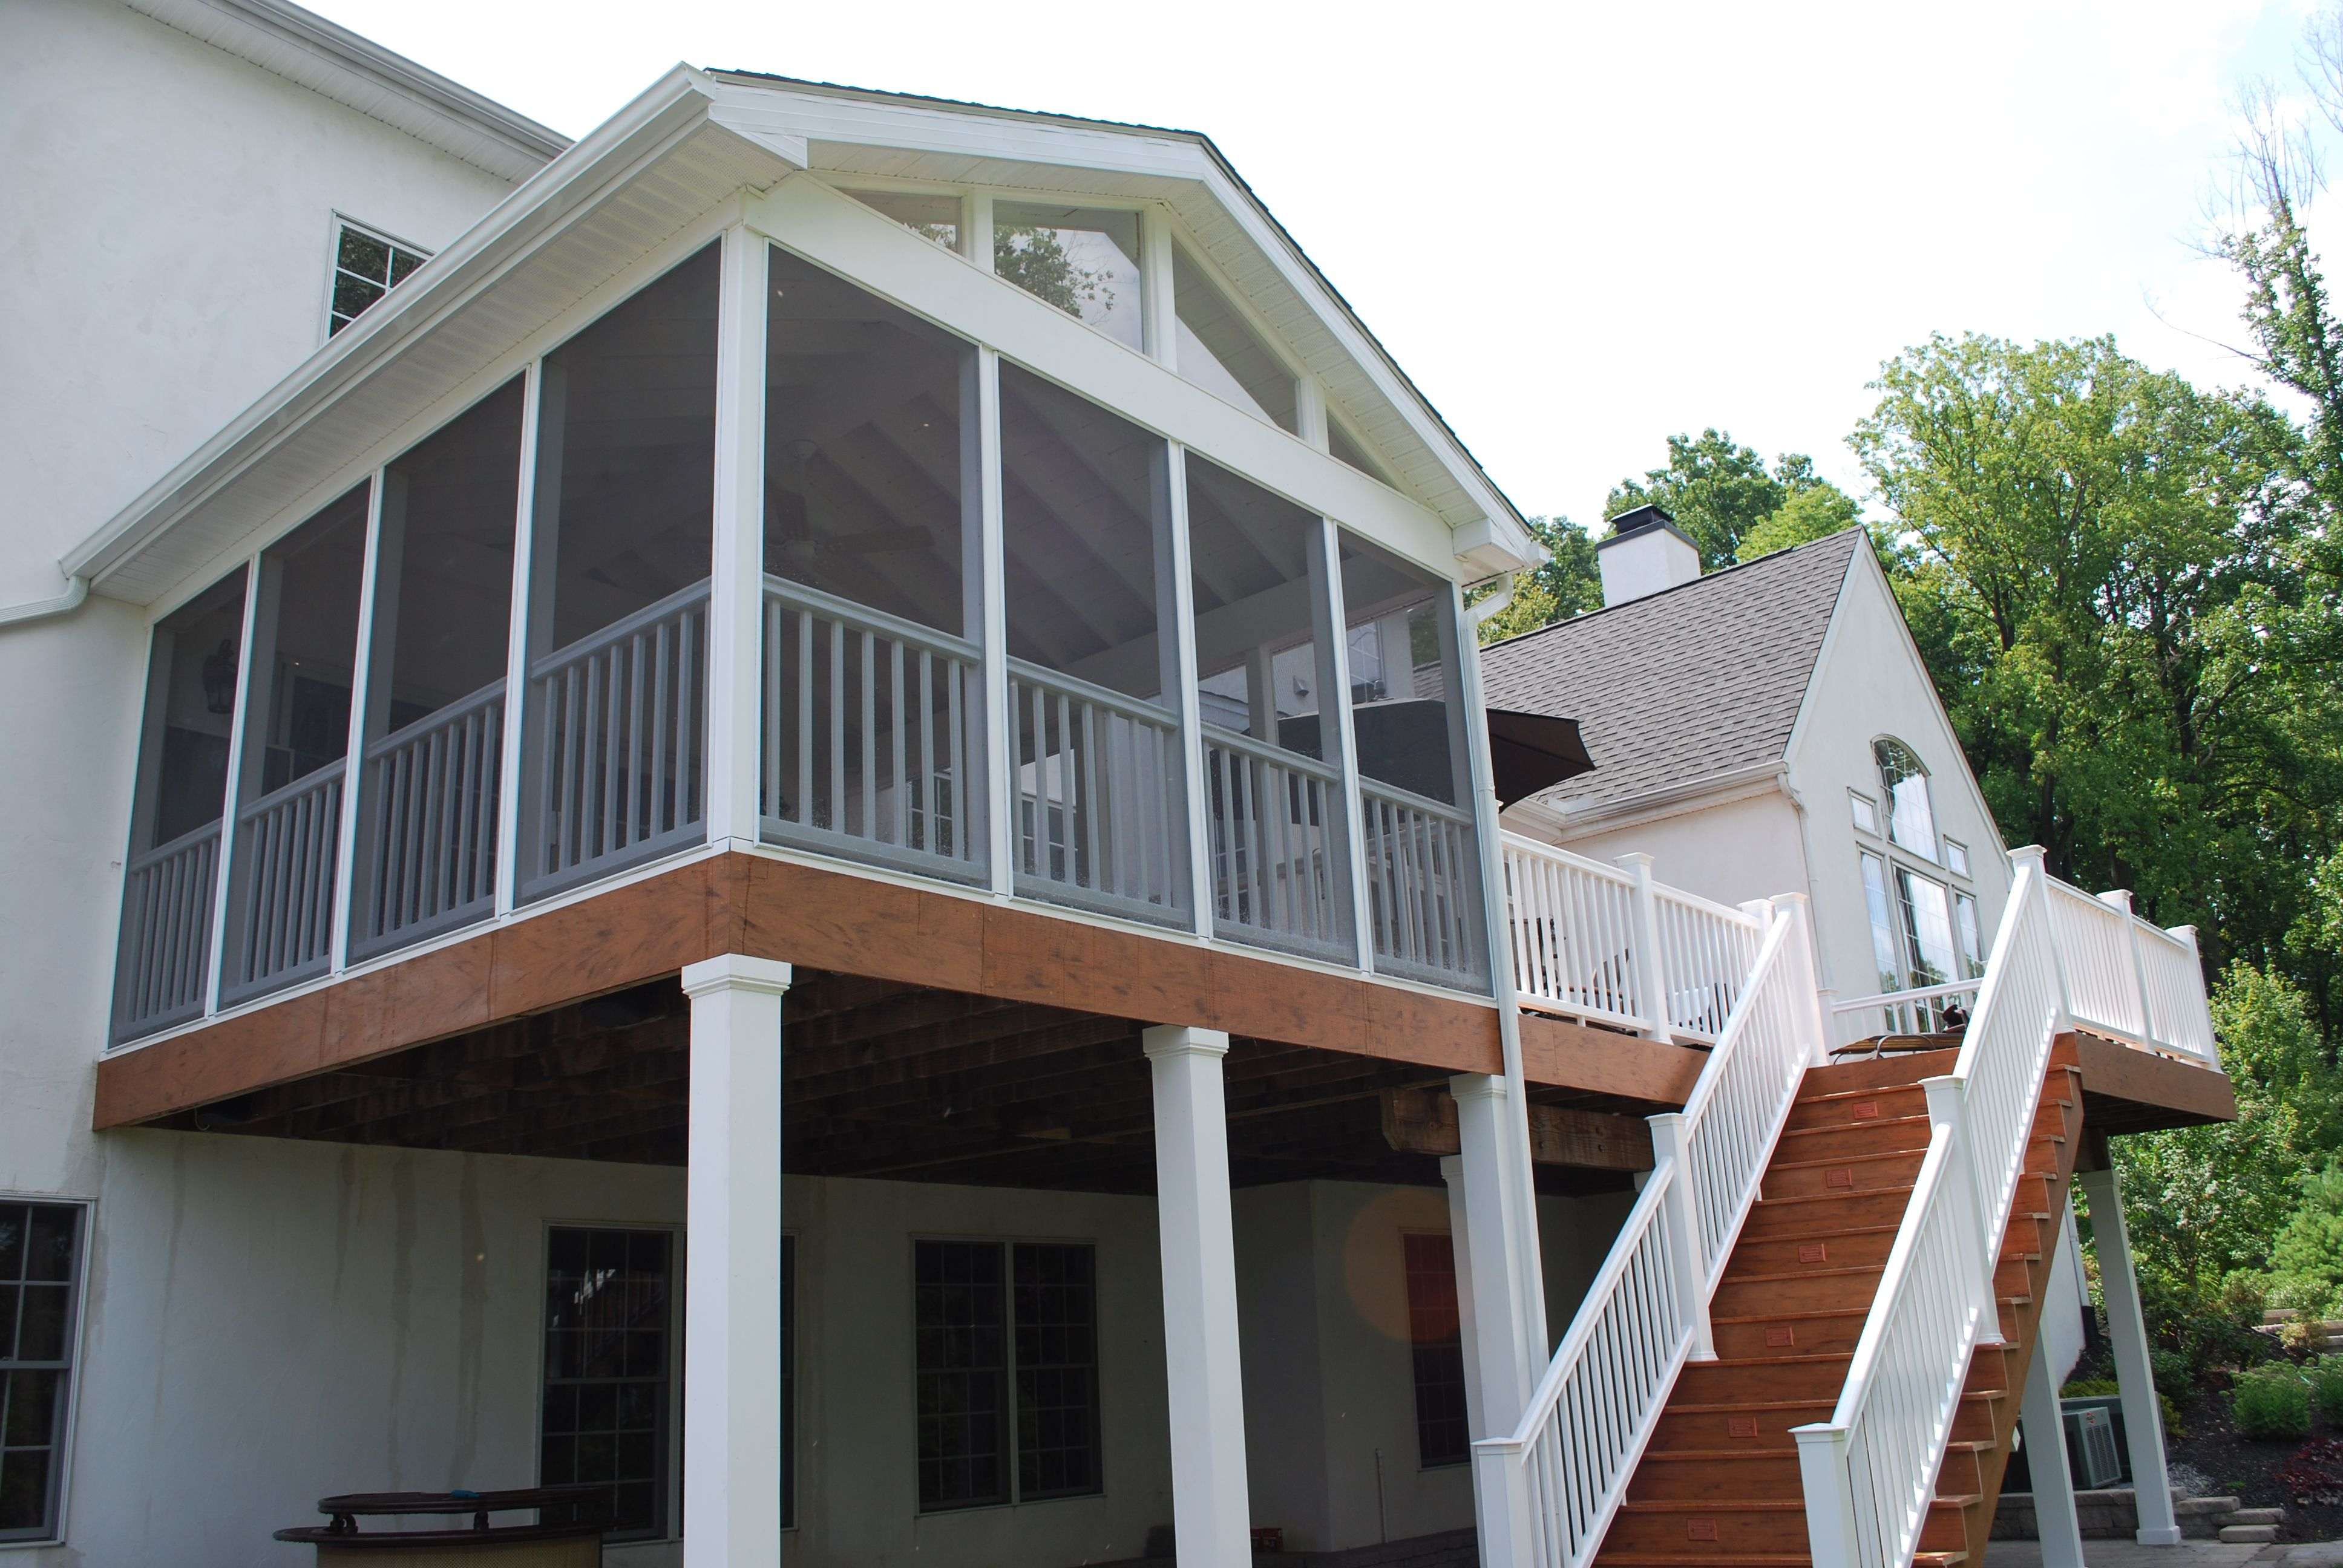 Elevated Screened Porch With Deck And Stairs Porch Design